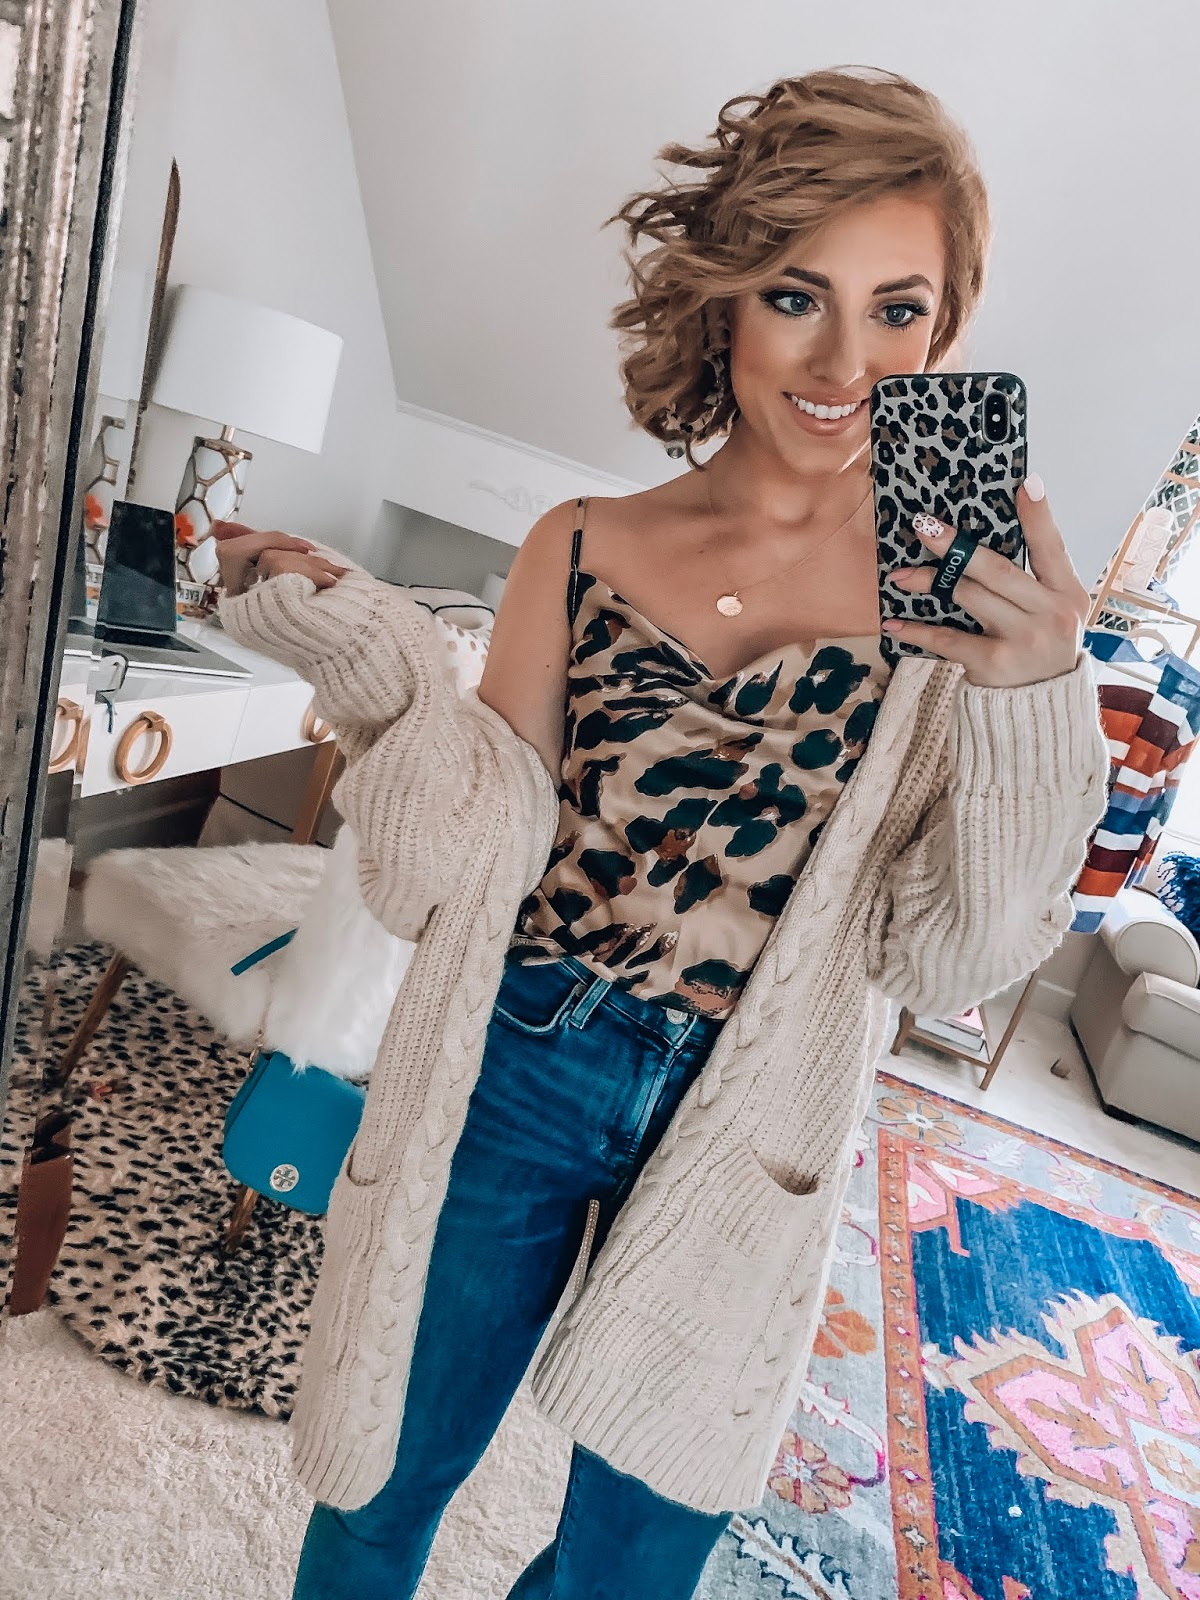 $16 Leopard Cami + Under $30 Braided Cardigan - The Perfect look for transitioning into fall - Recent Amazon Finds - Something Delightful Blog